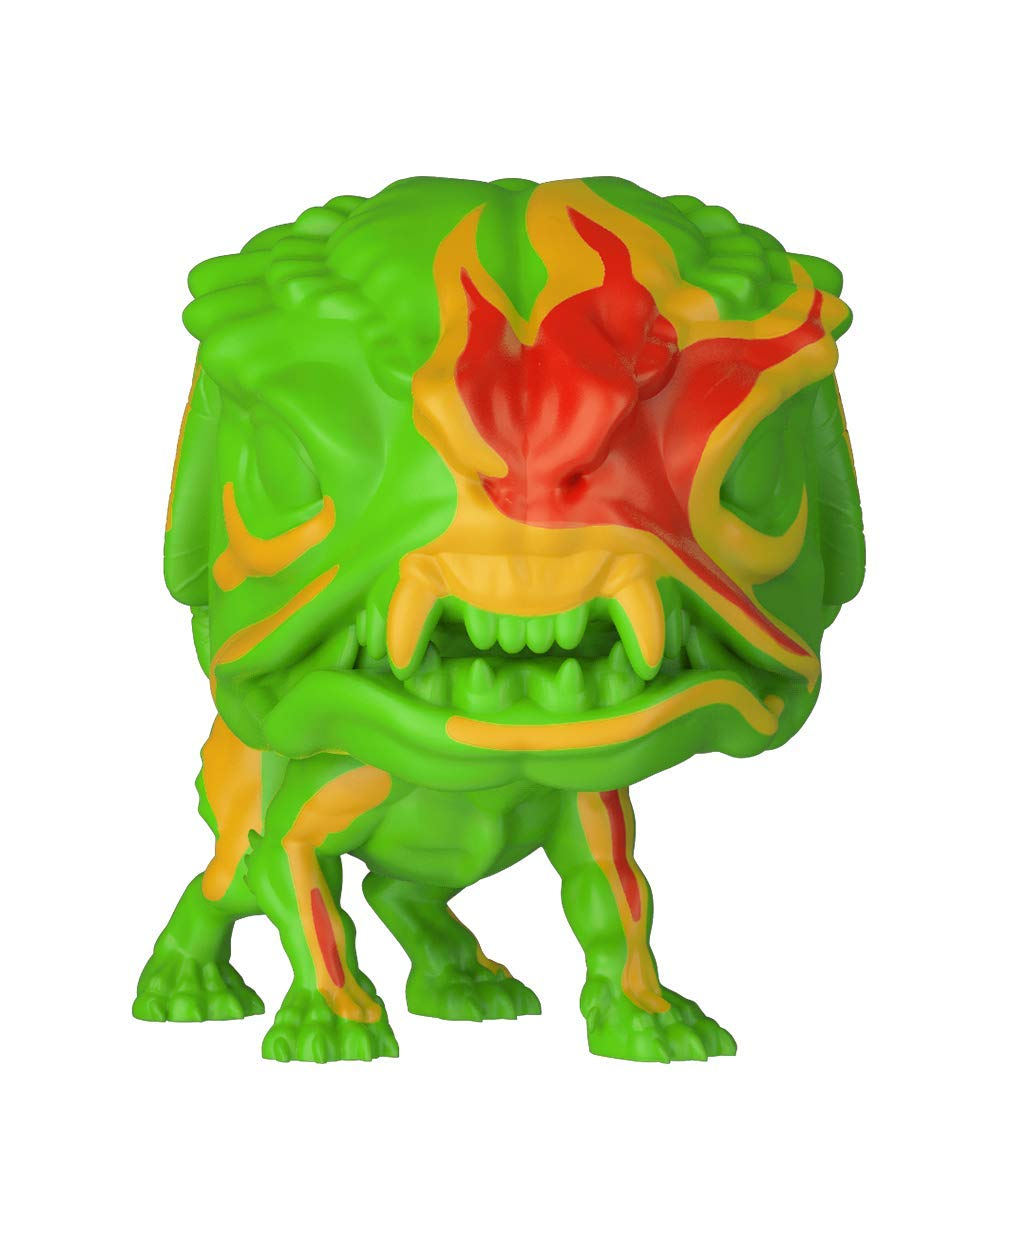 Funko Pop! Movies Heat Vision Predator Hound Amazon Exclusive Collectible Figure, Multicolor by Funko (Image #1)